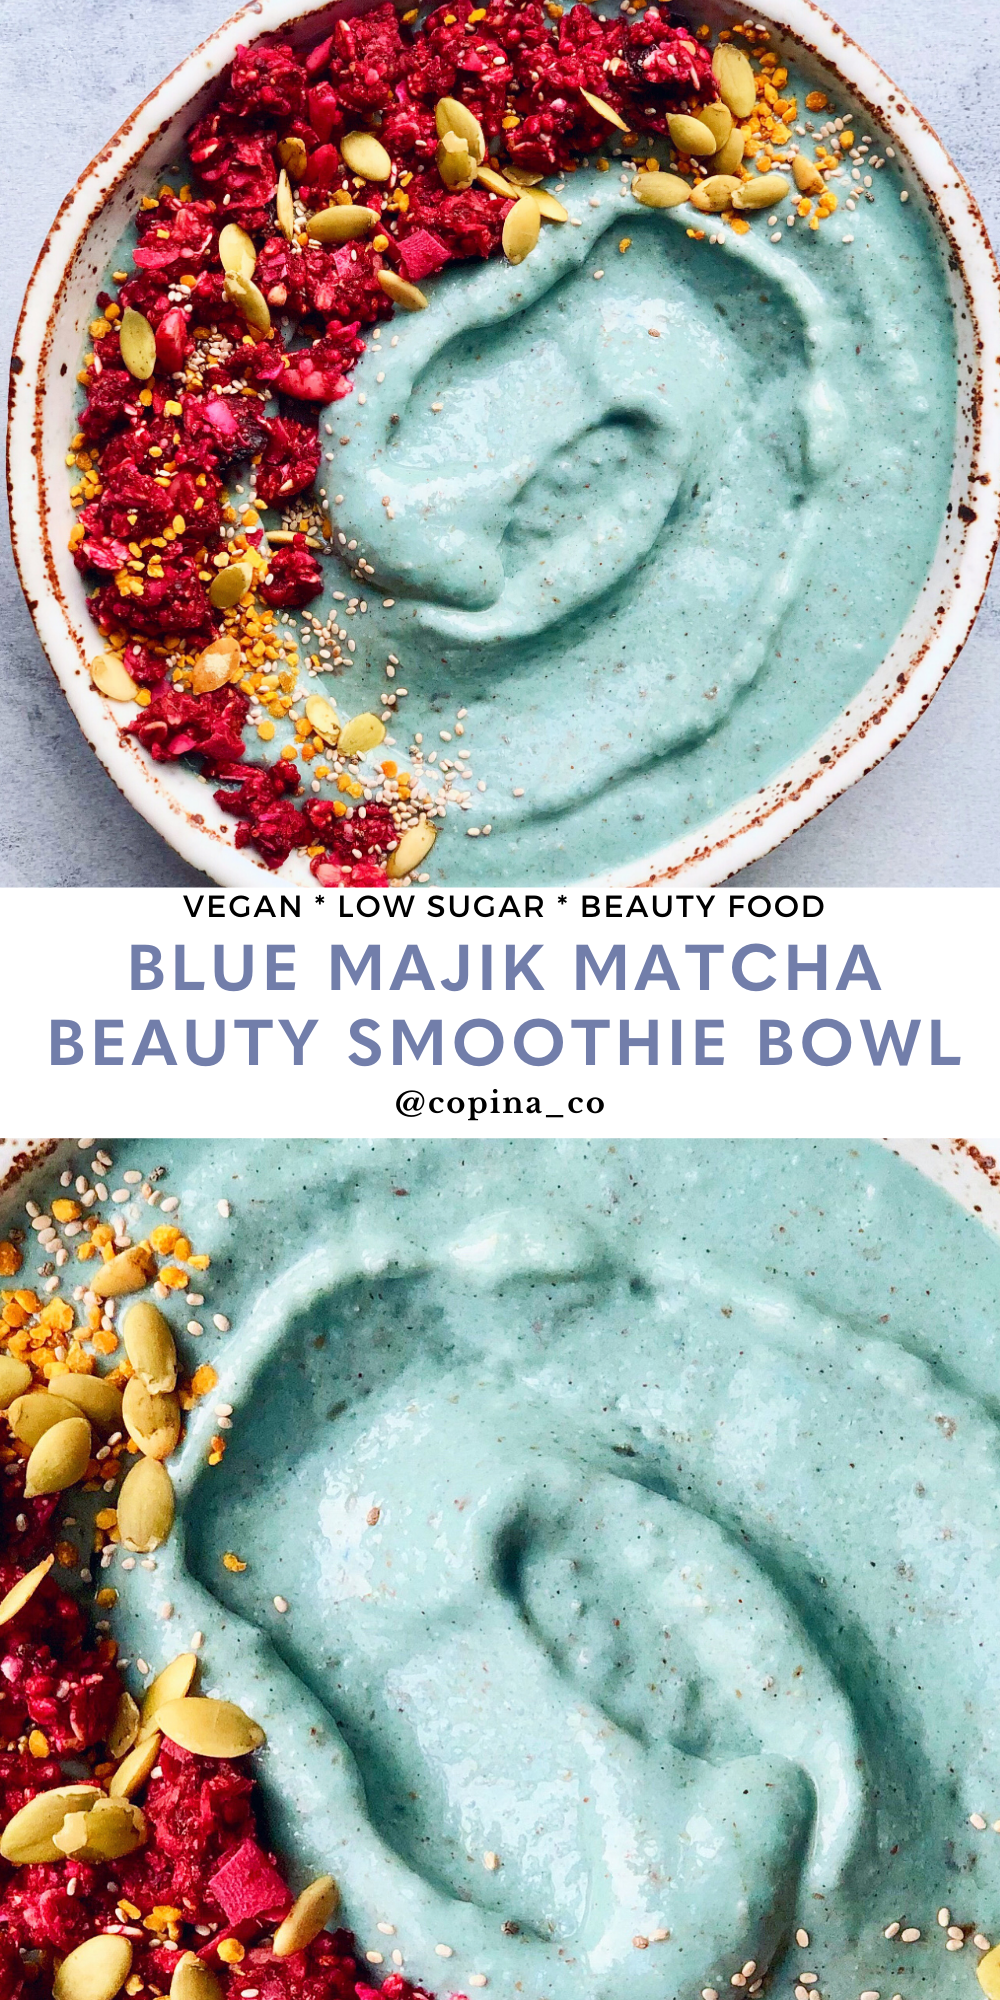 Copina Co Blue Majik Matcha Beauty Smoothie Bowl